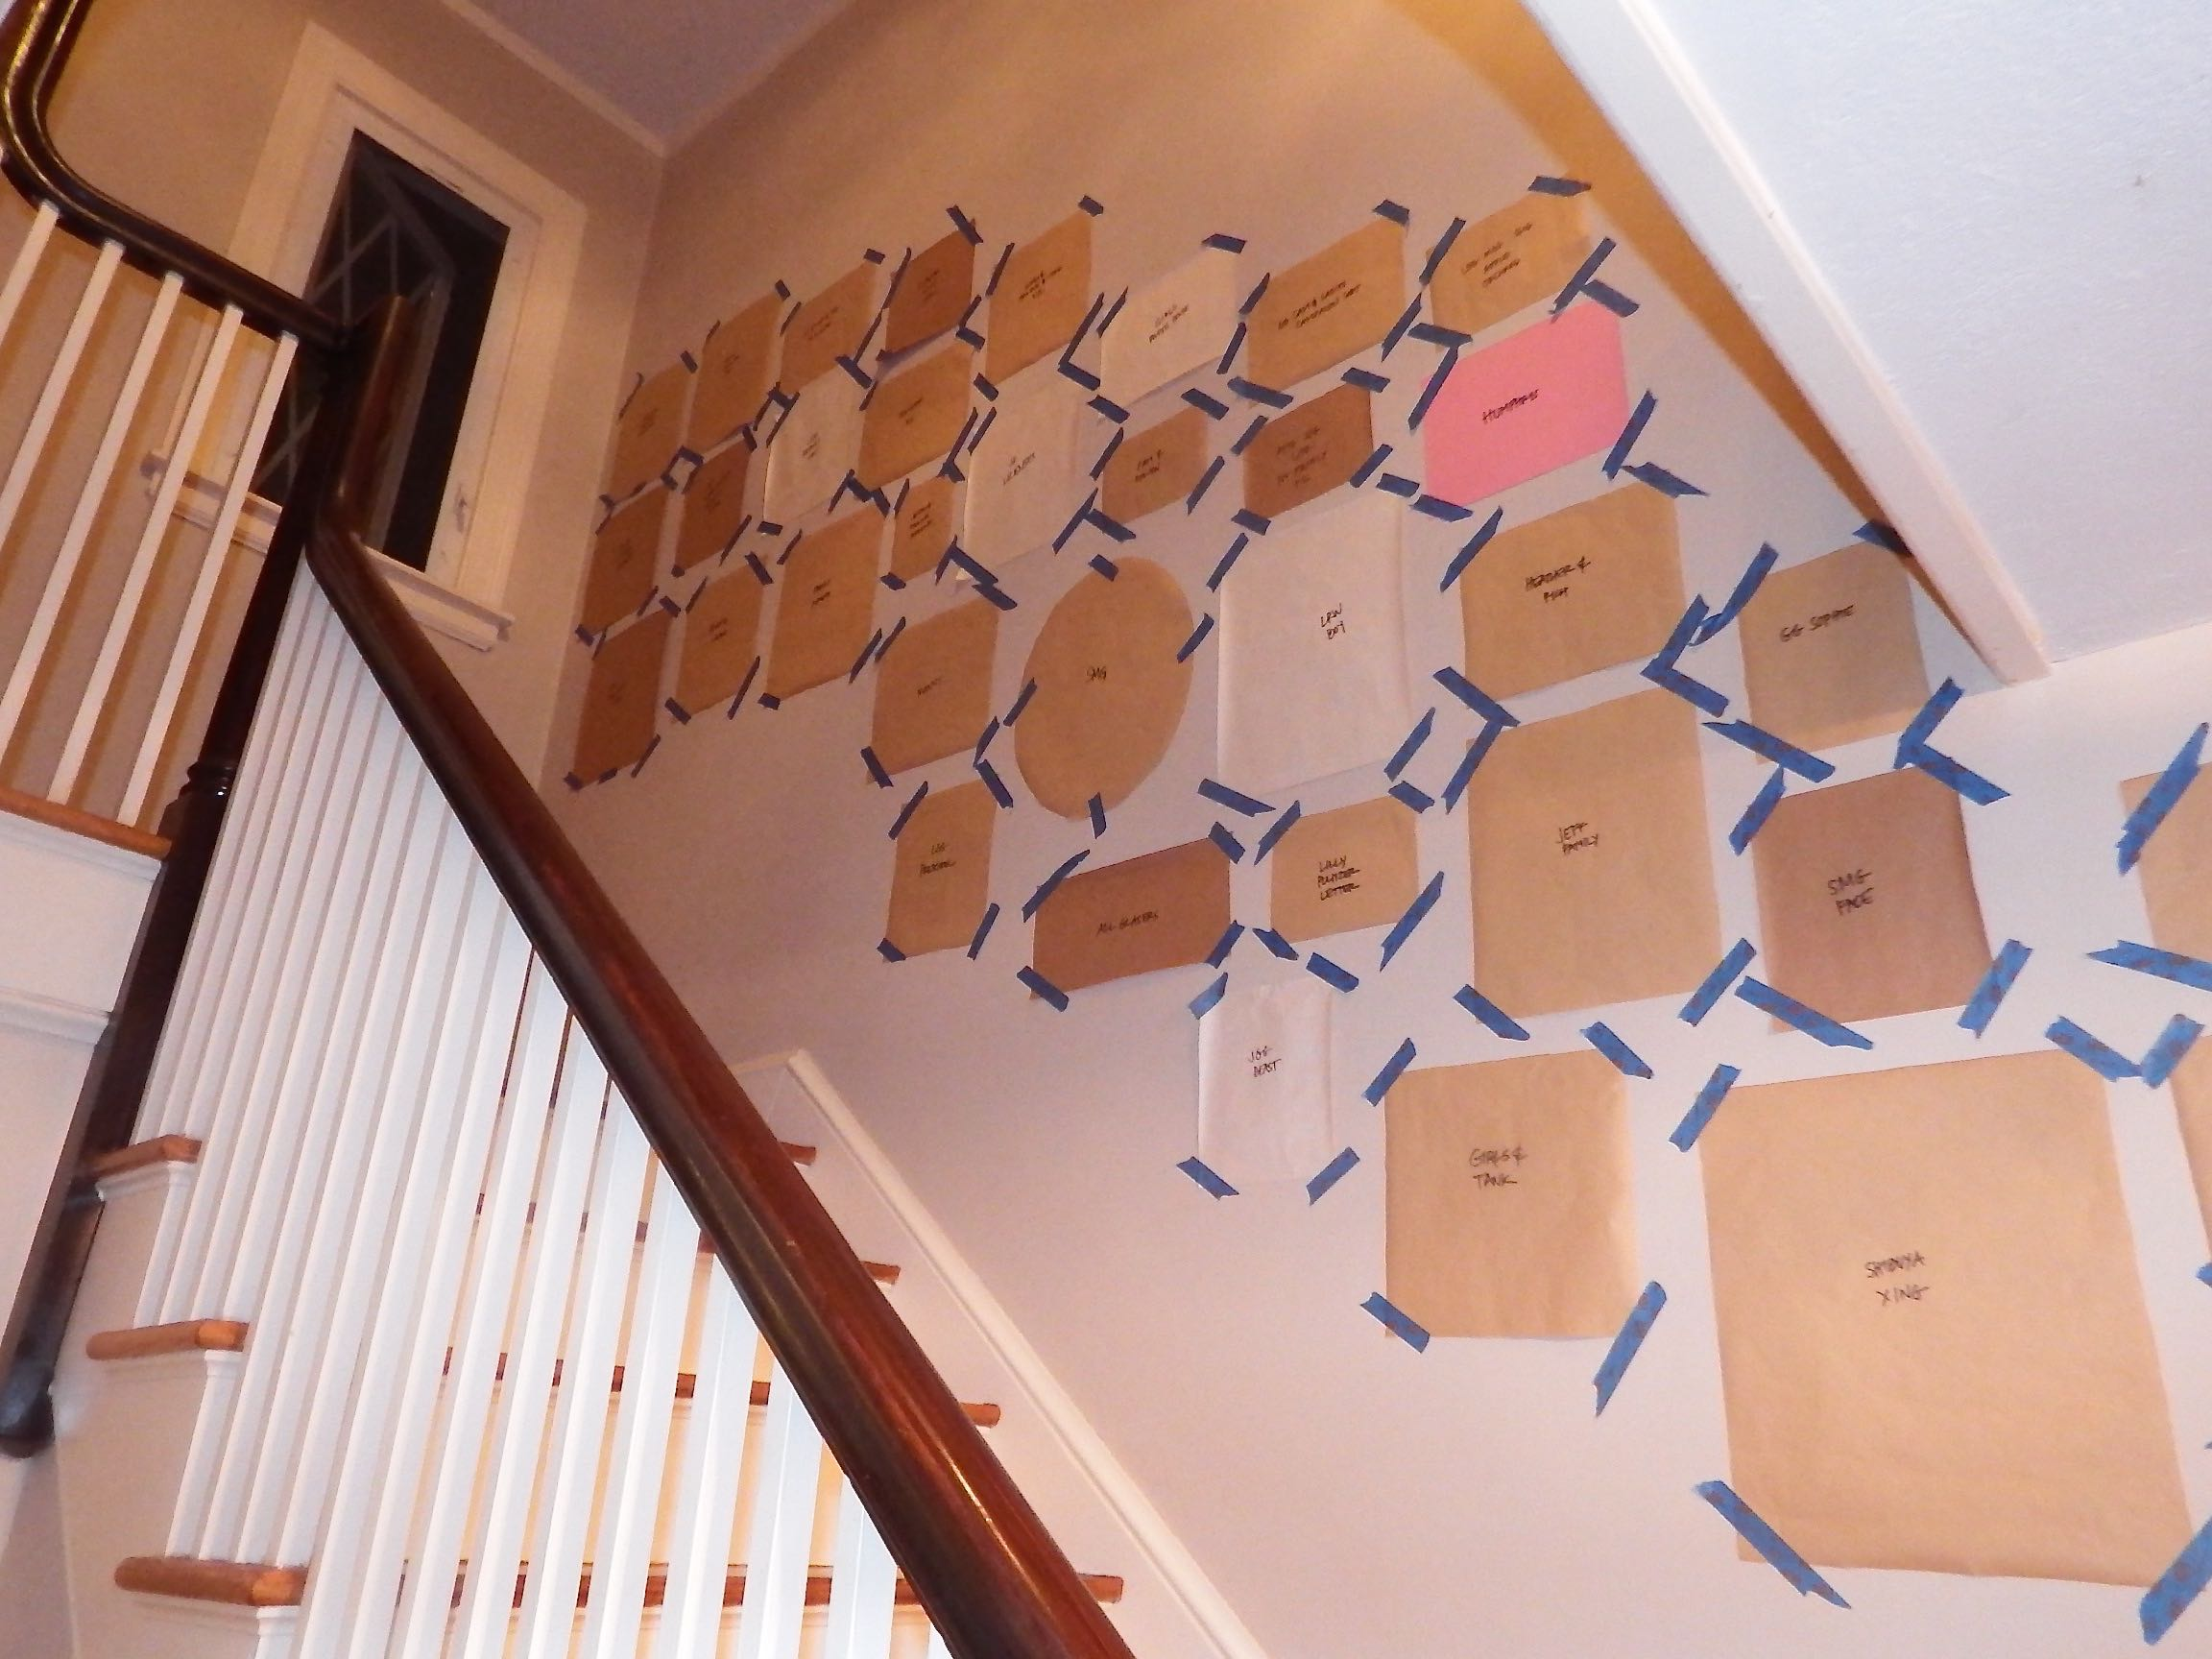 Staircase gallery wall felt so cute papertemplates maxwellsz